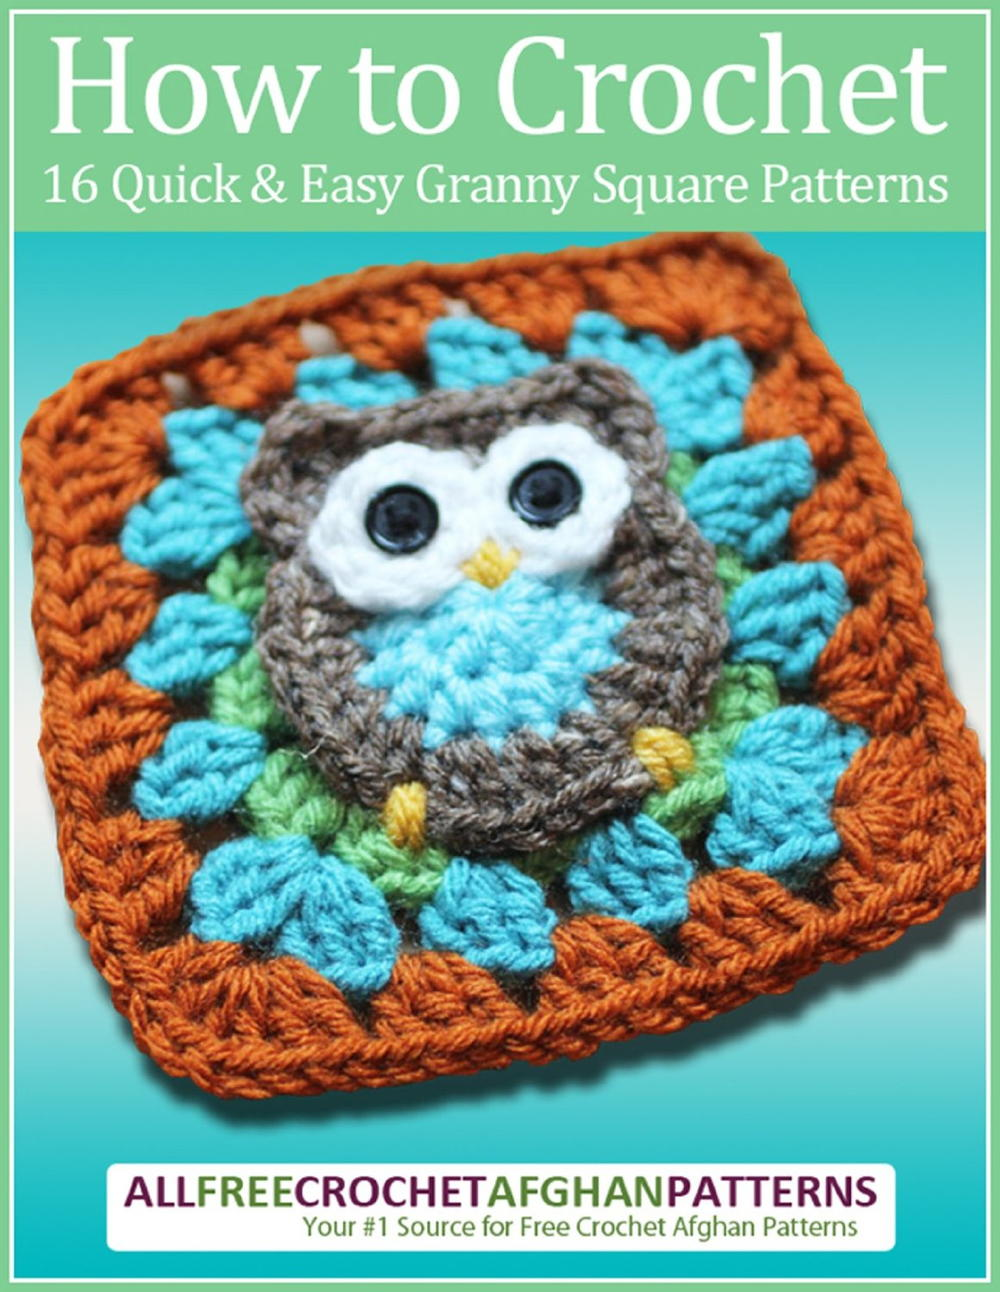 Book Cover Crochet Granny : How to crochet quick and easy granny square patterns